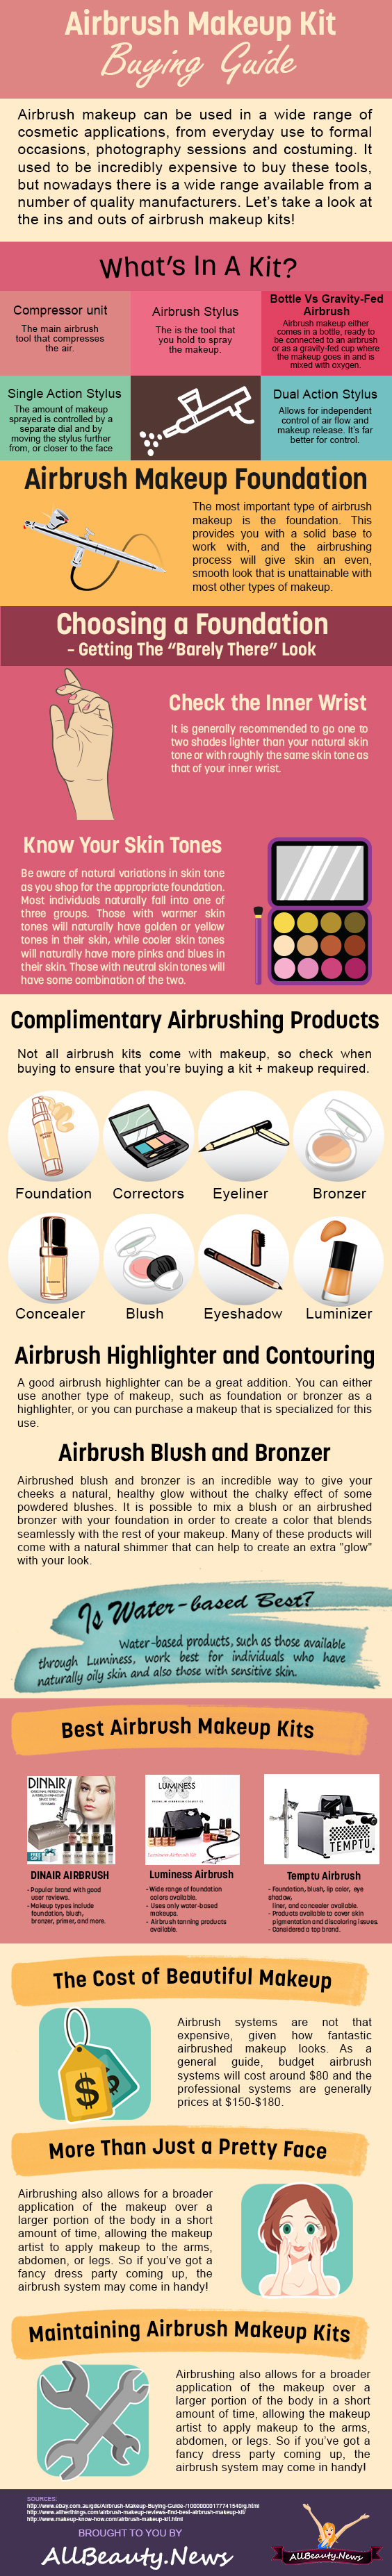 Airbrush Makeup Kit Infographic. Exactly what to look for when buying an airbrush makeup kit